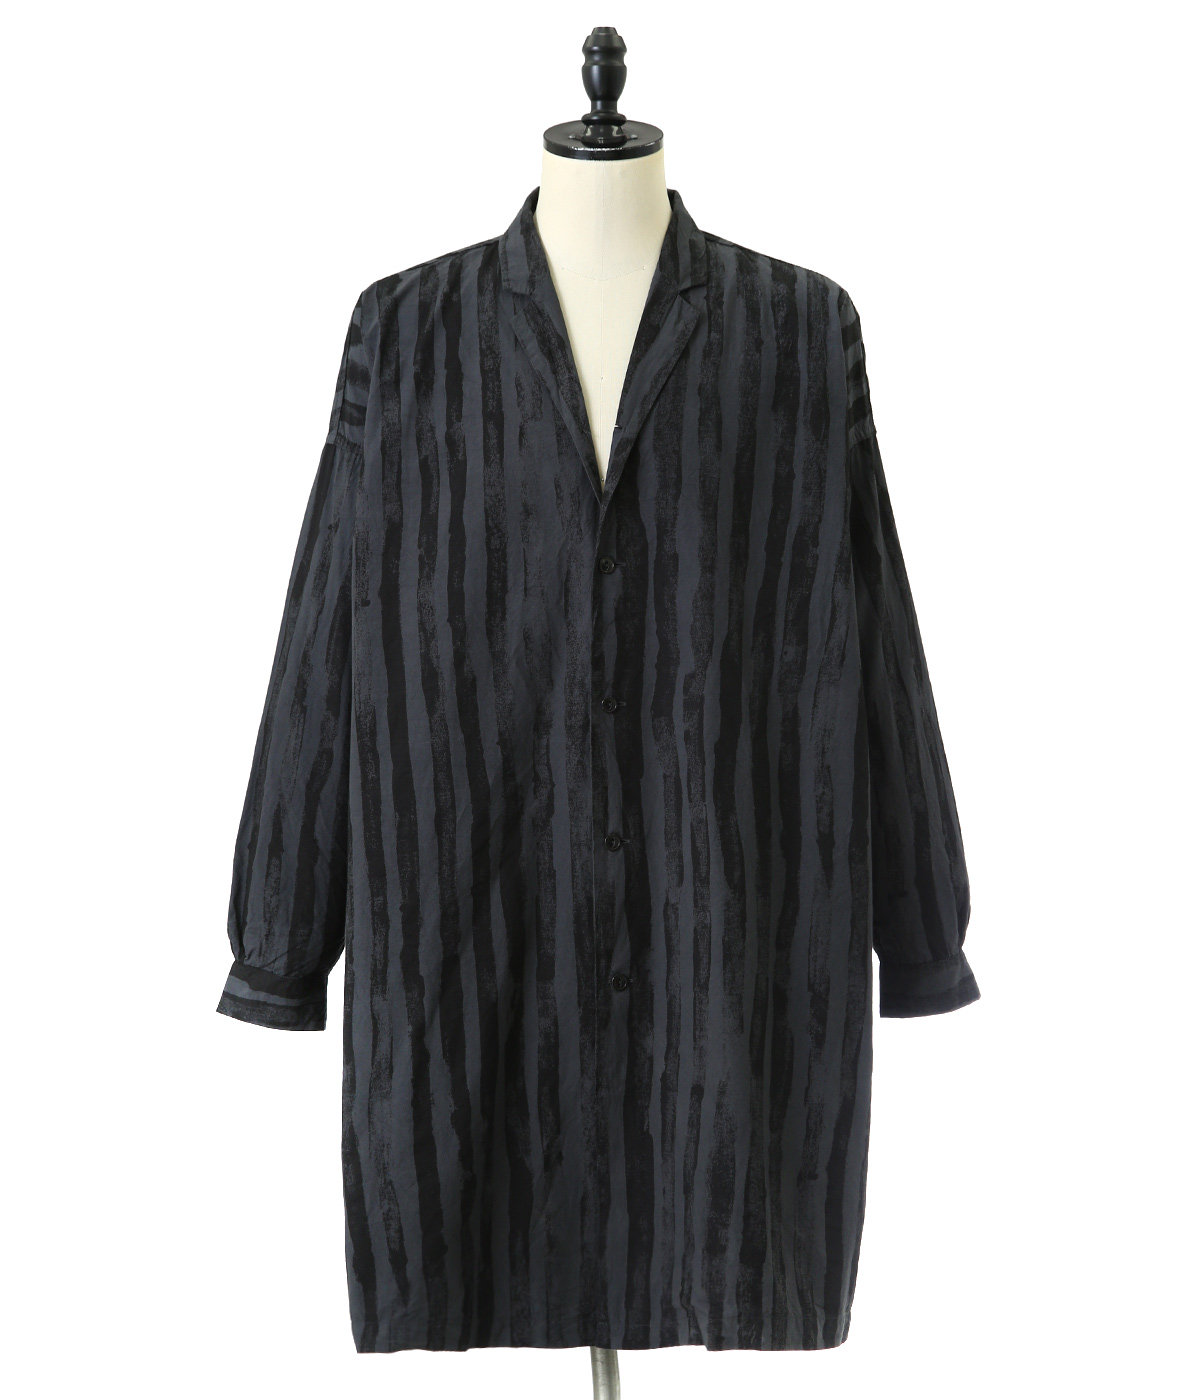 BRUSH STRIPES BROAD ATELIER COAT